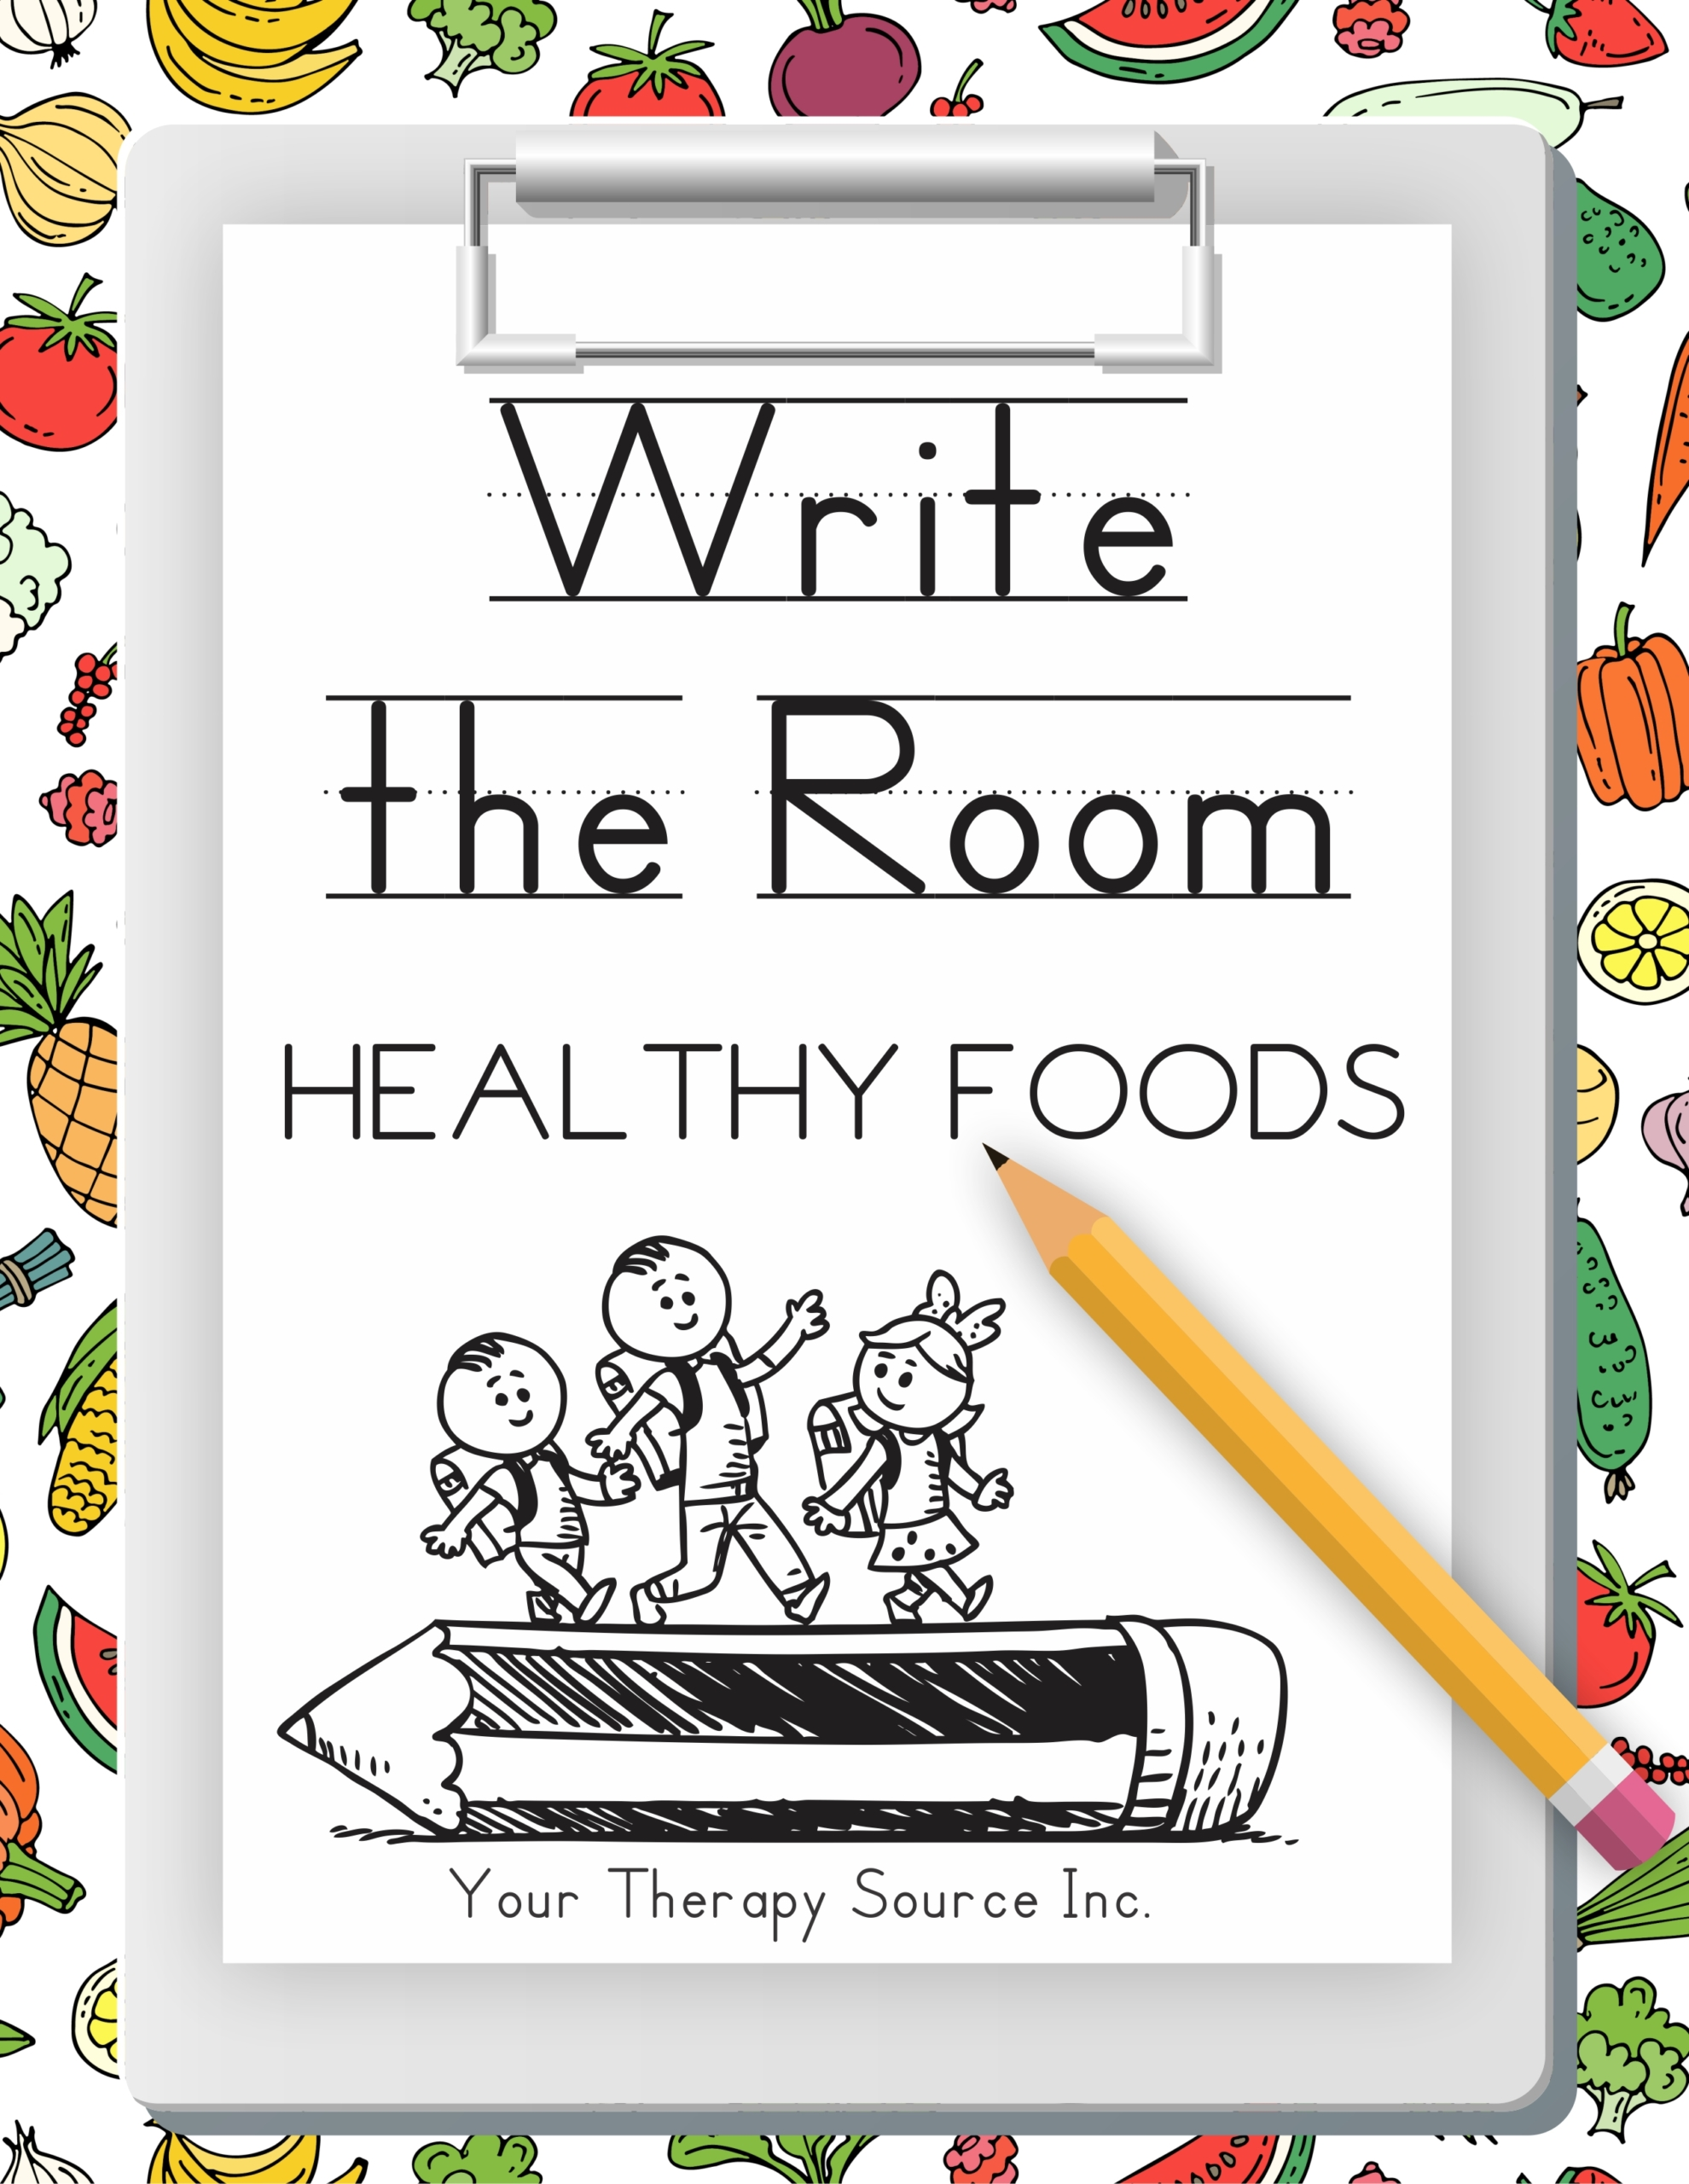 Write the Room Healthy Foodsdigital download includes 40 healthy food picture word cards from the 5 food groups along with differentiated recording sheets to support various levels of handwriting skills.